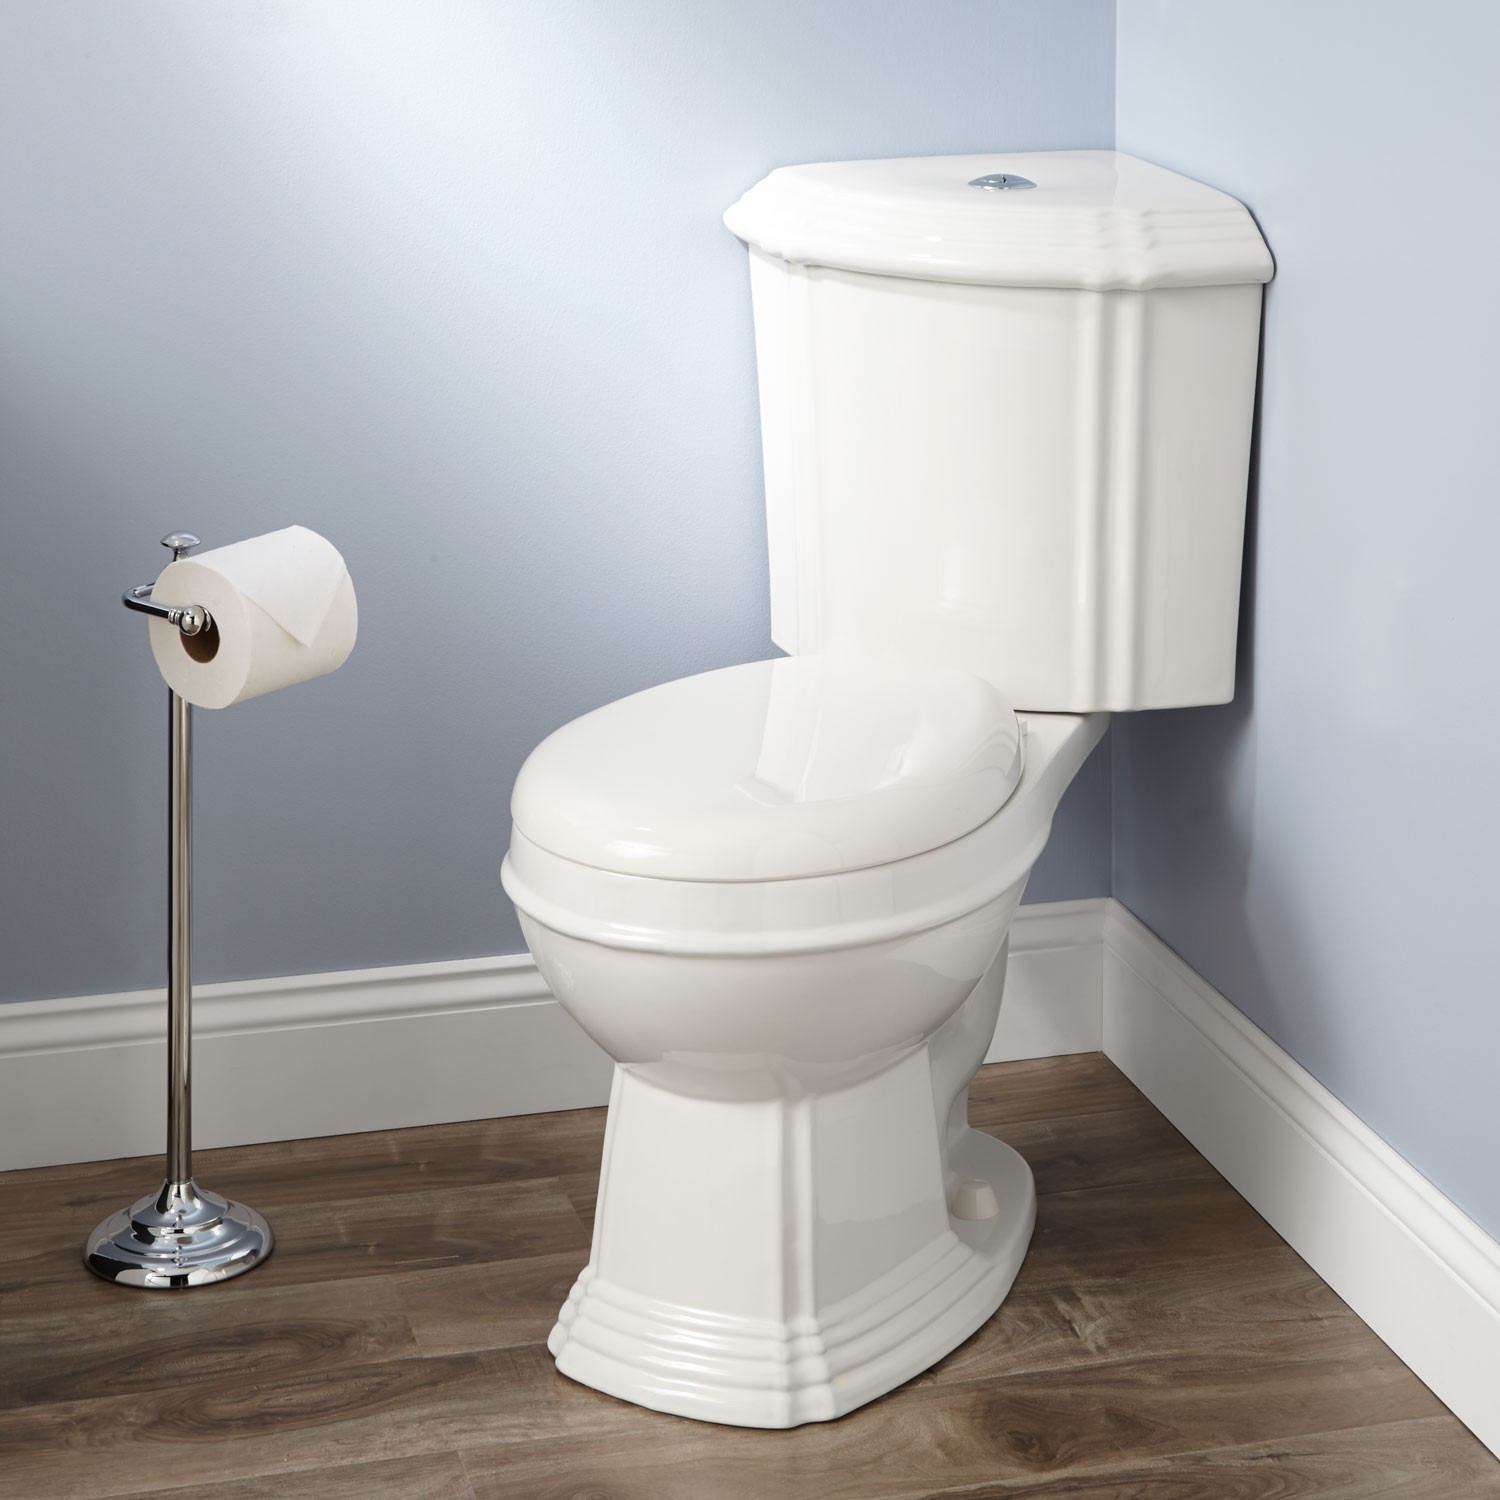 How to Remove and Install Toilet